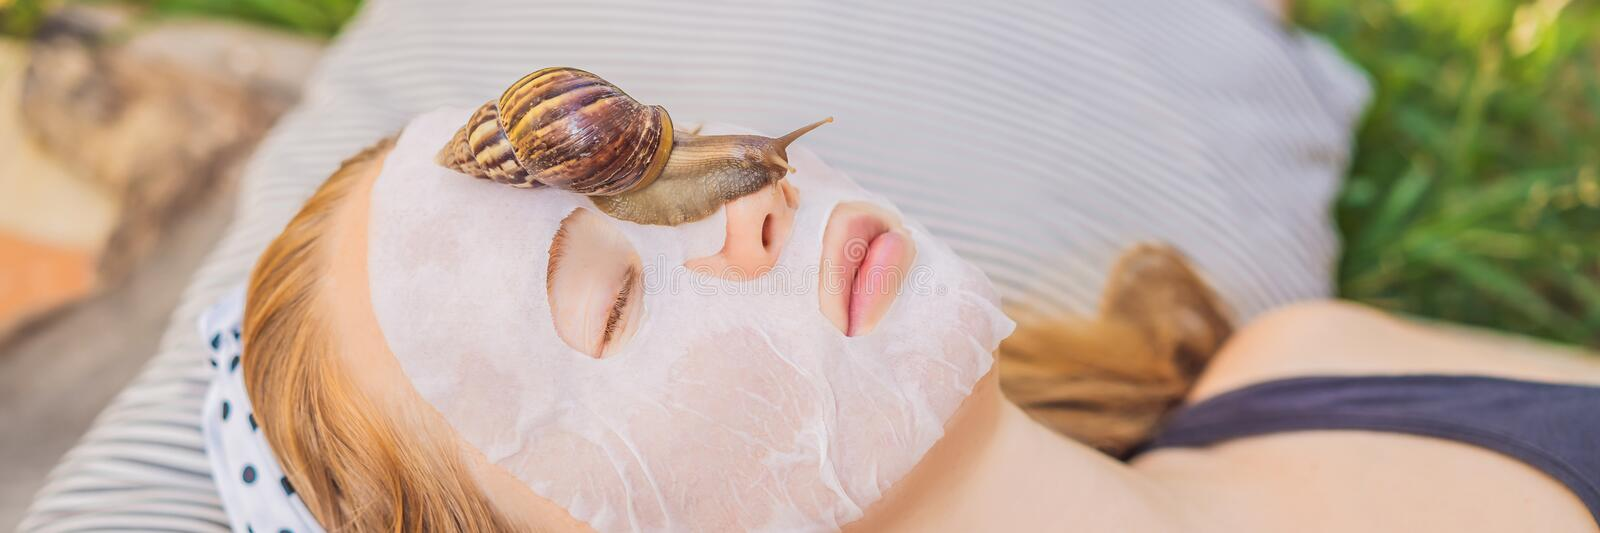 Young woman makes a face mask with snail mucus. Snail crawling on a face mask BANNER, LONG FORMAT. Young woman makes a face mask with snail mucus. Snail crawling royalty free stock image